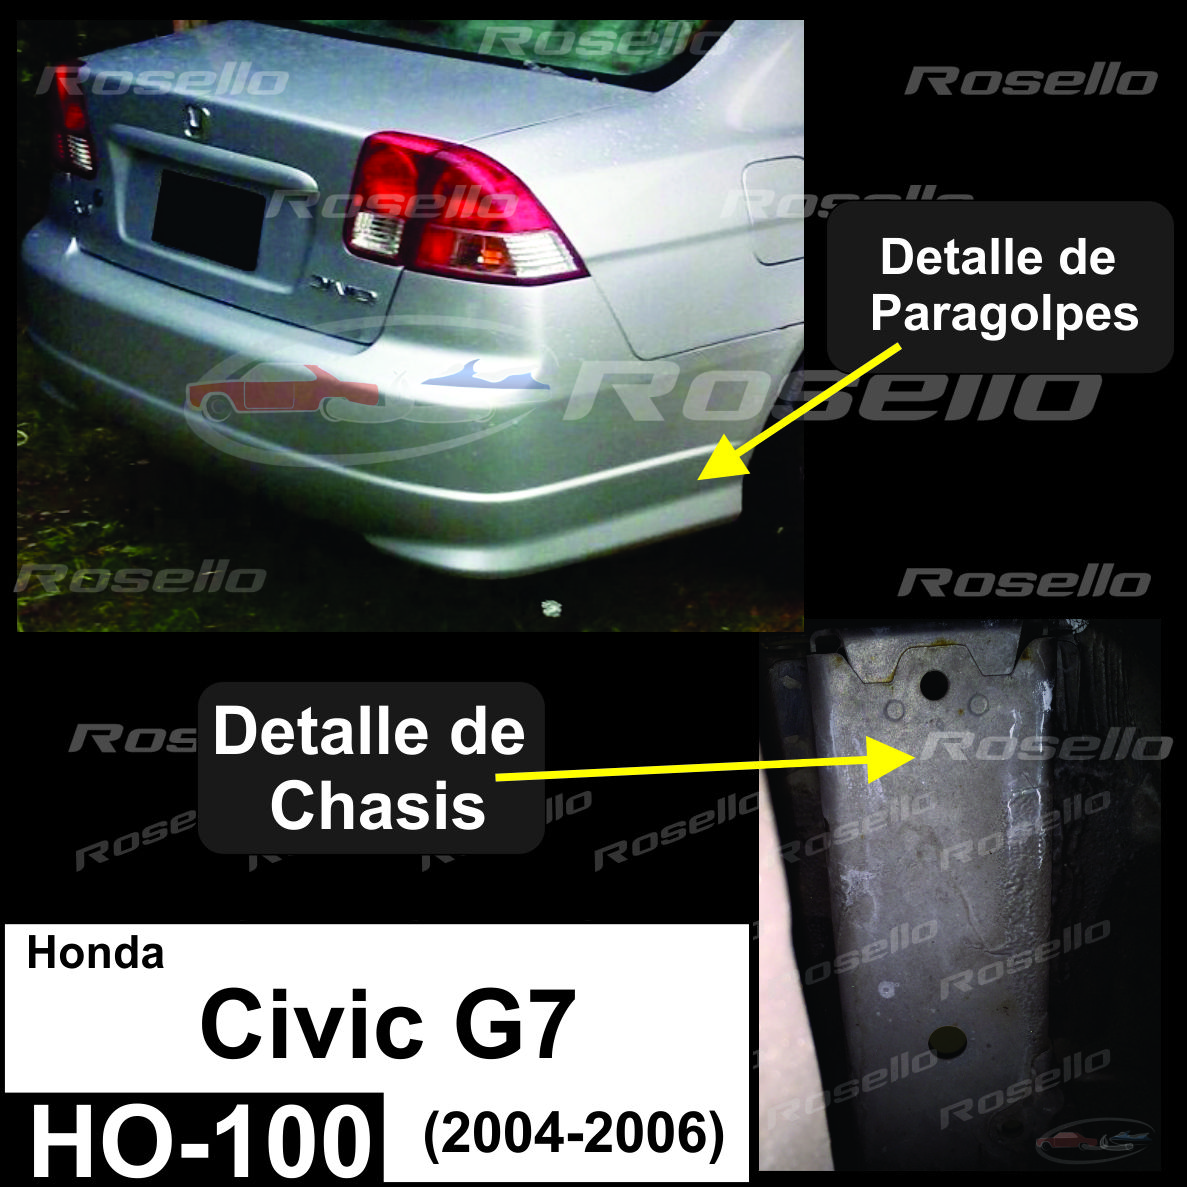 HO-100 / Civic